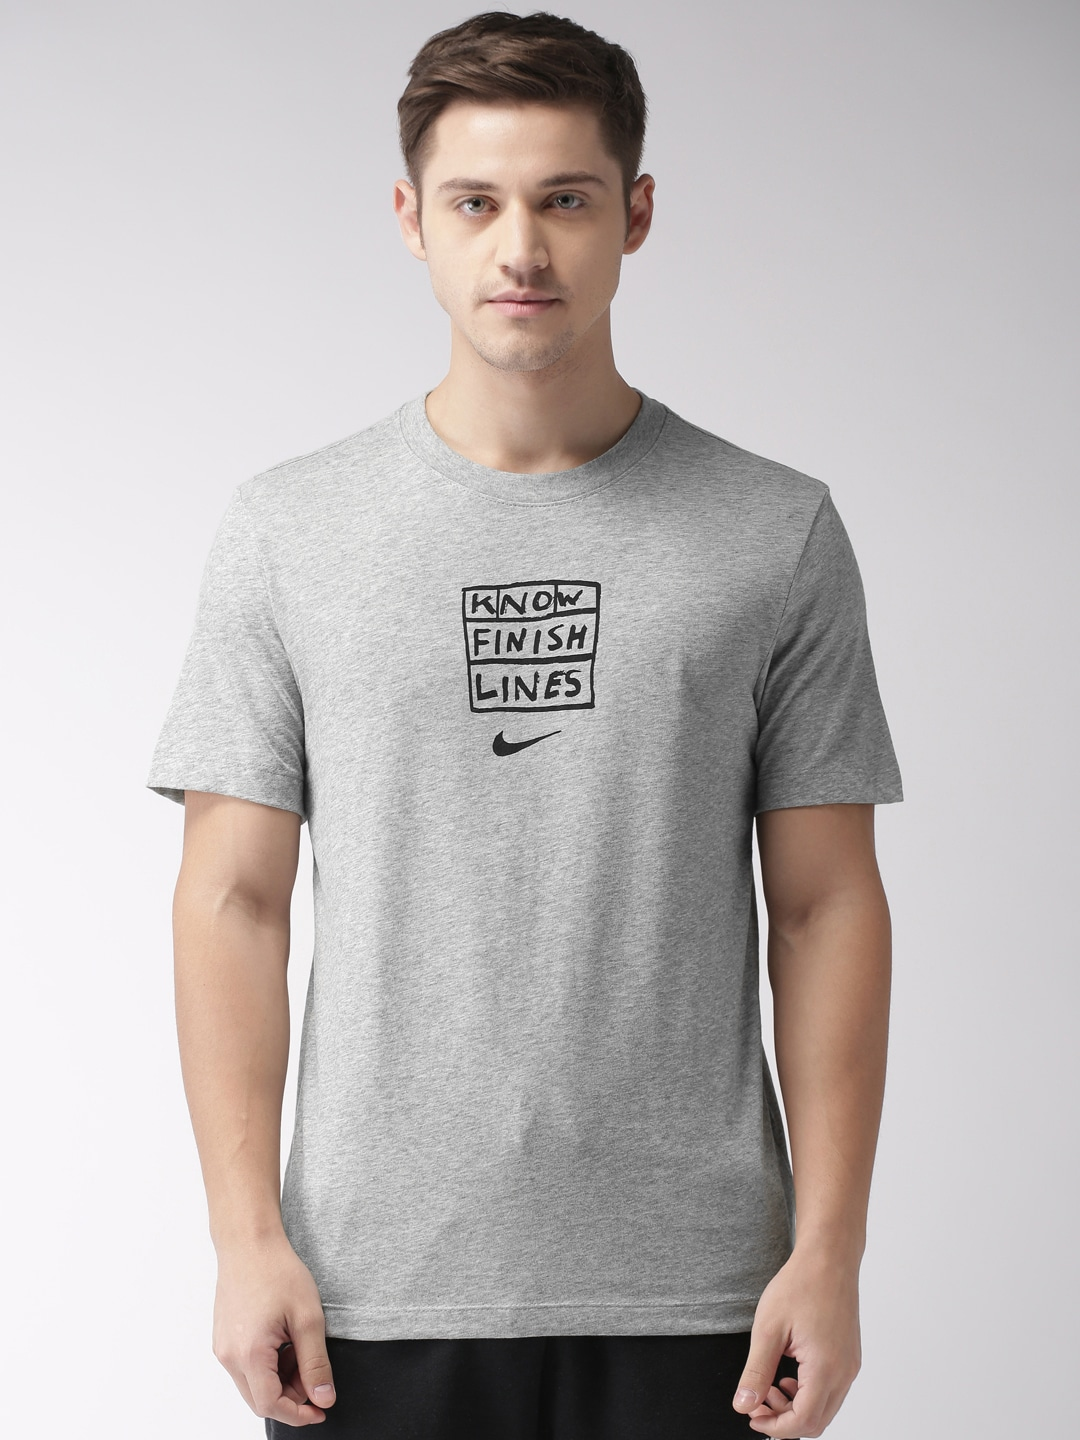 2316efc25 Nike TShirts - Buy Nike T-shirts Online in India | Myntra